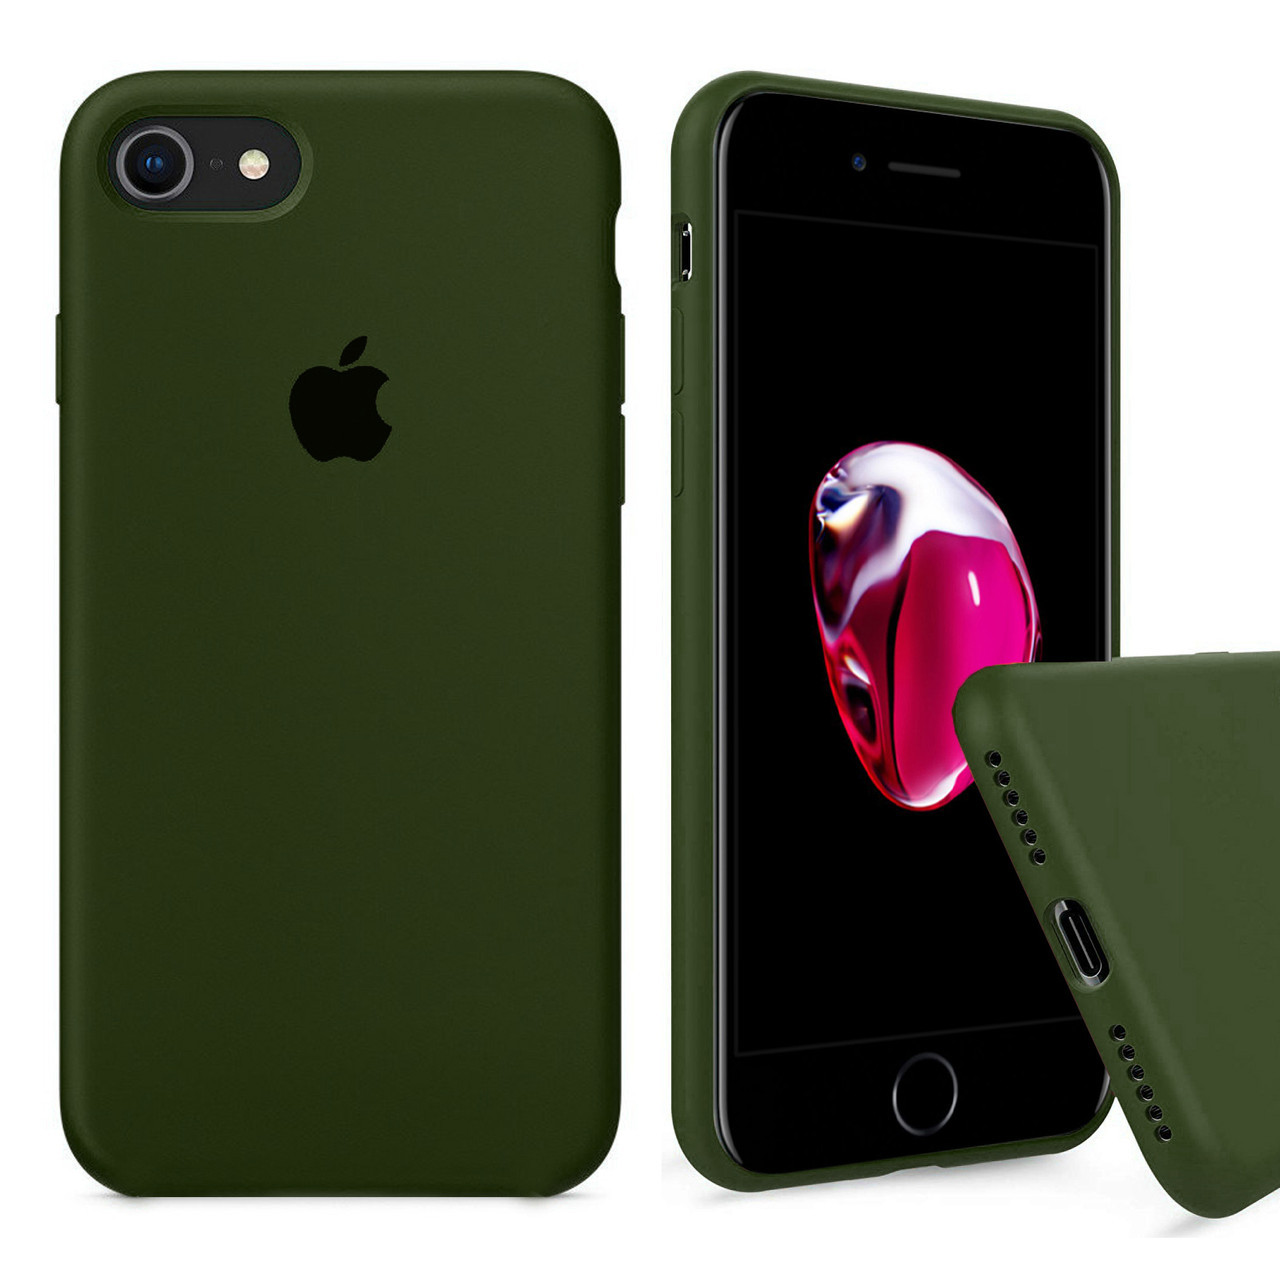 Чехол накладка xCase для iPhone 6/6s Silicone Case Full olive